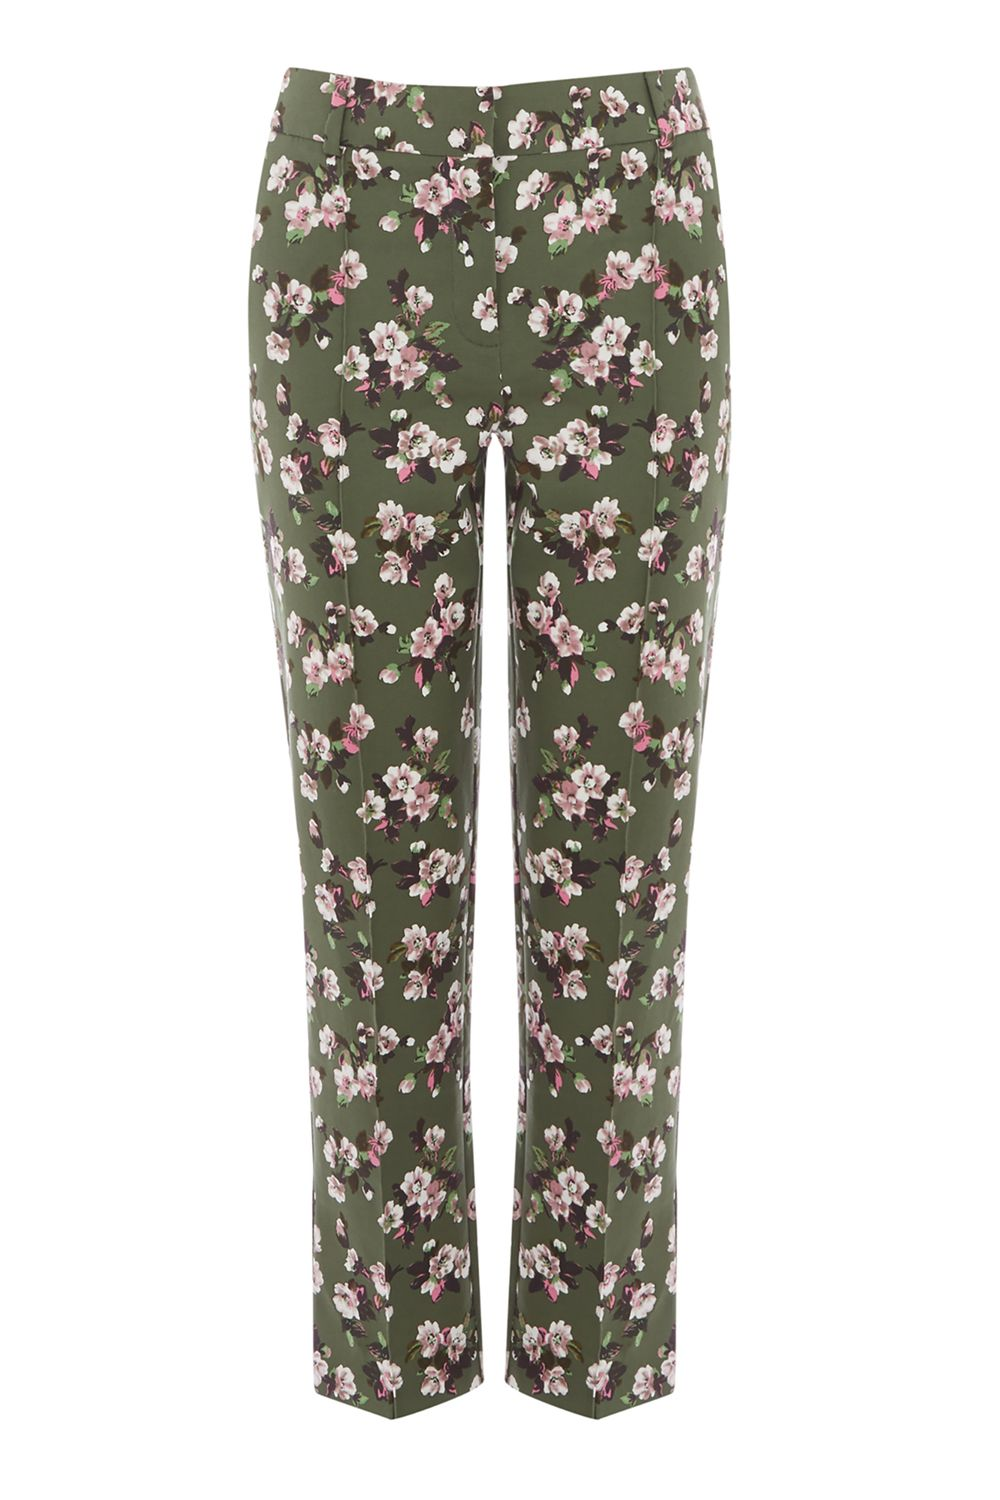 Warehouse Mae Floral Trousers, Multi-Coloured